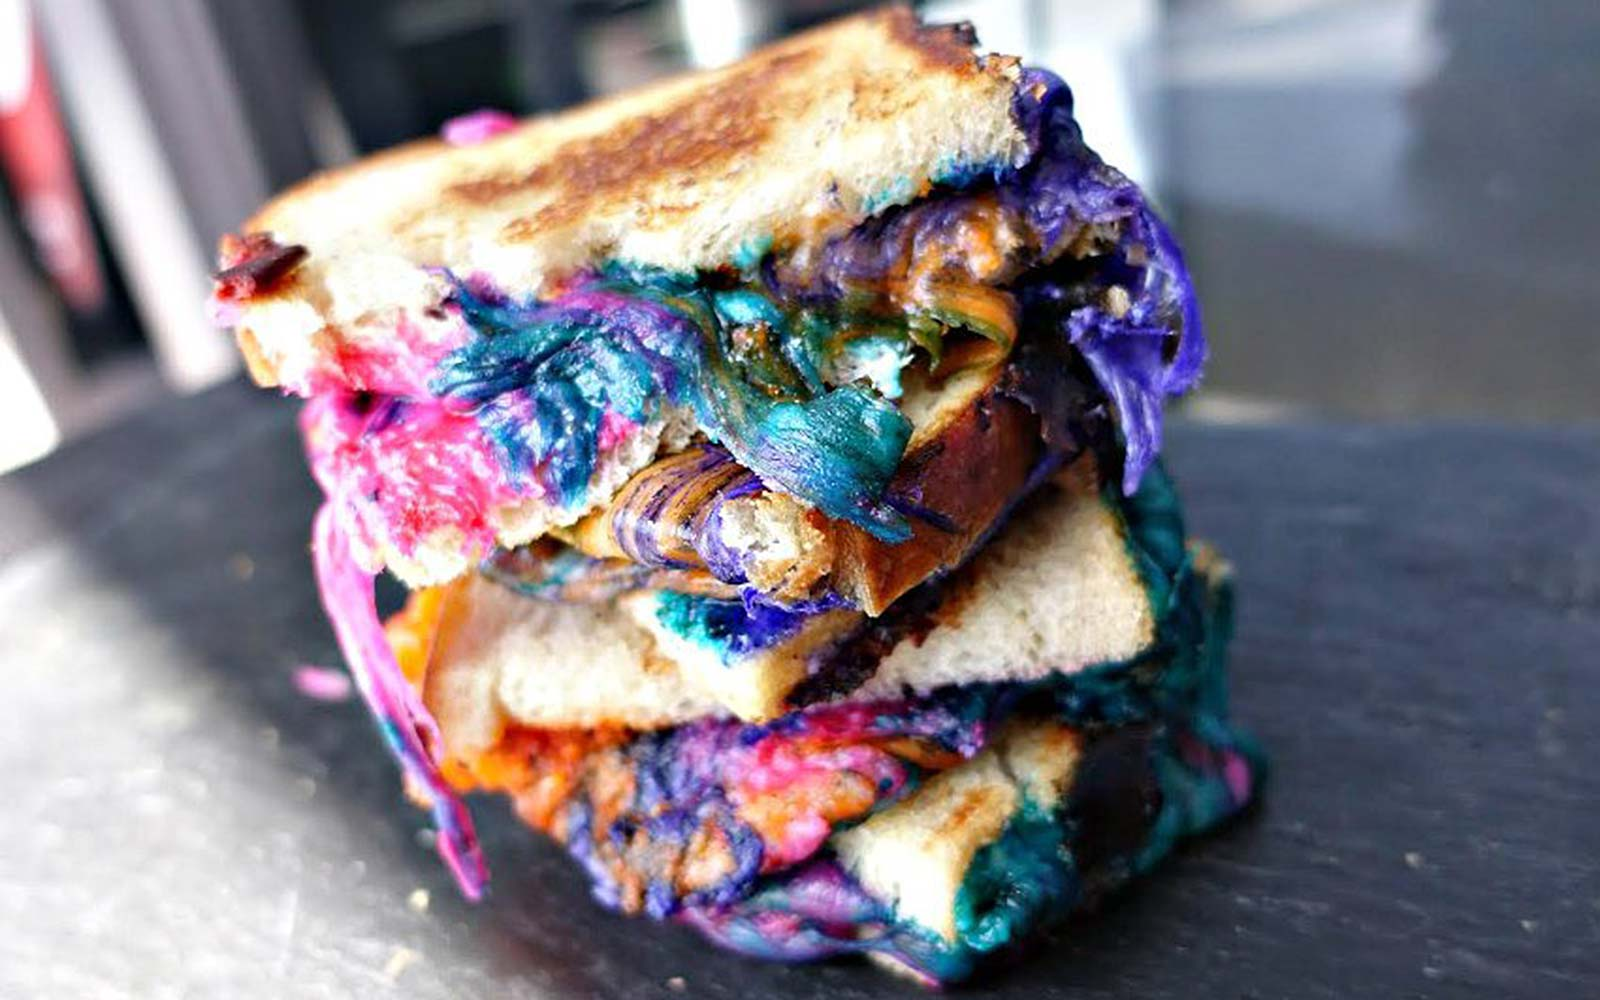 Tired of the Unicorn Frappuccino? Try a Rainbow Grilled Cheese